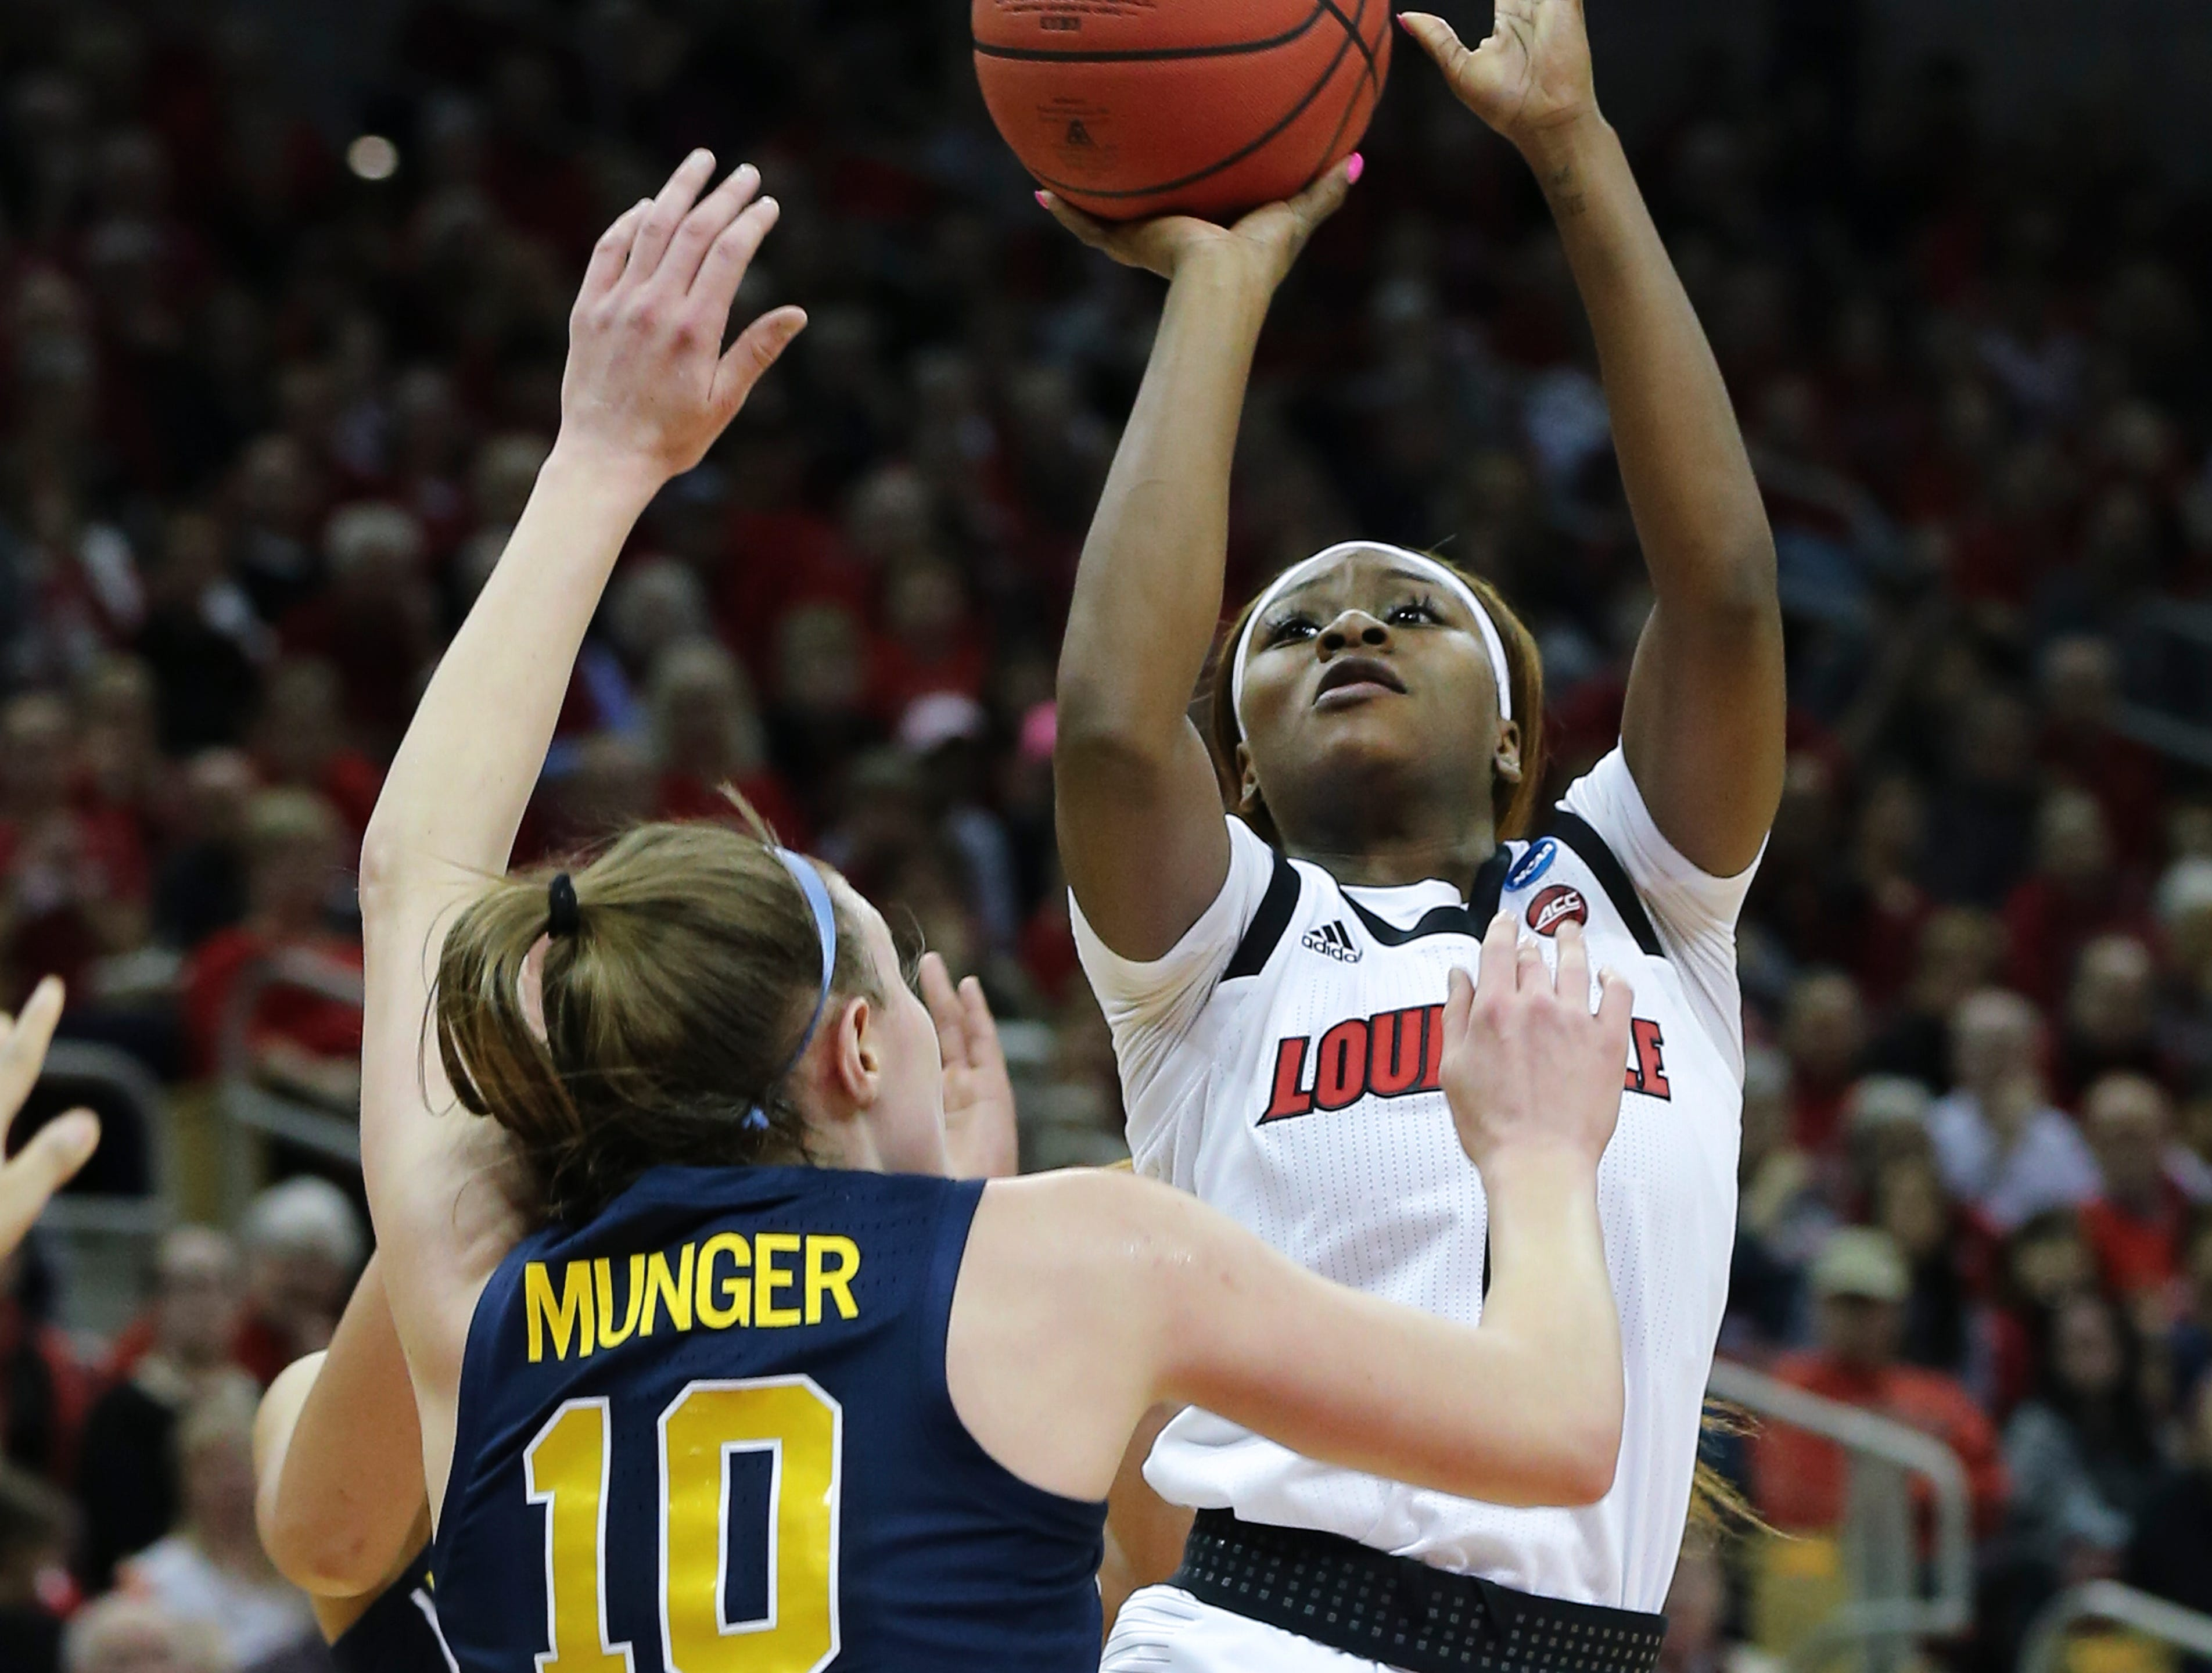 U of L's Dana Evans (1) shoots against Michigan's Nicole Munger (10) during the second round of their NCAA Tournament game at the Yum Center.Mar. 24, 2019